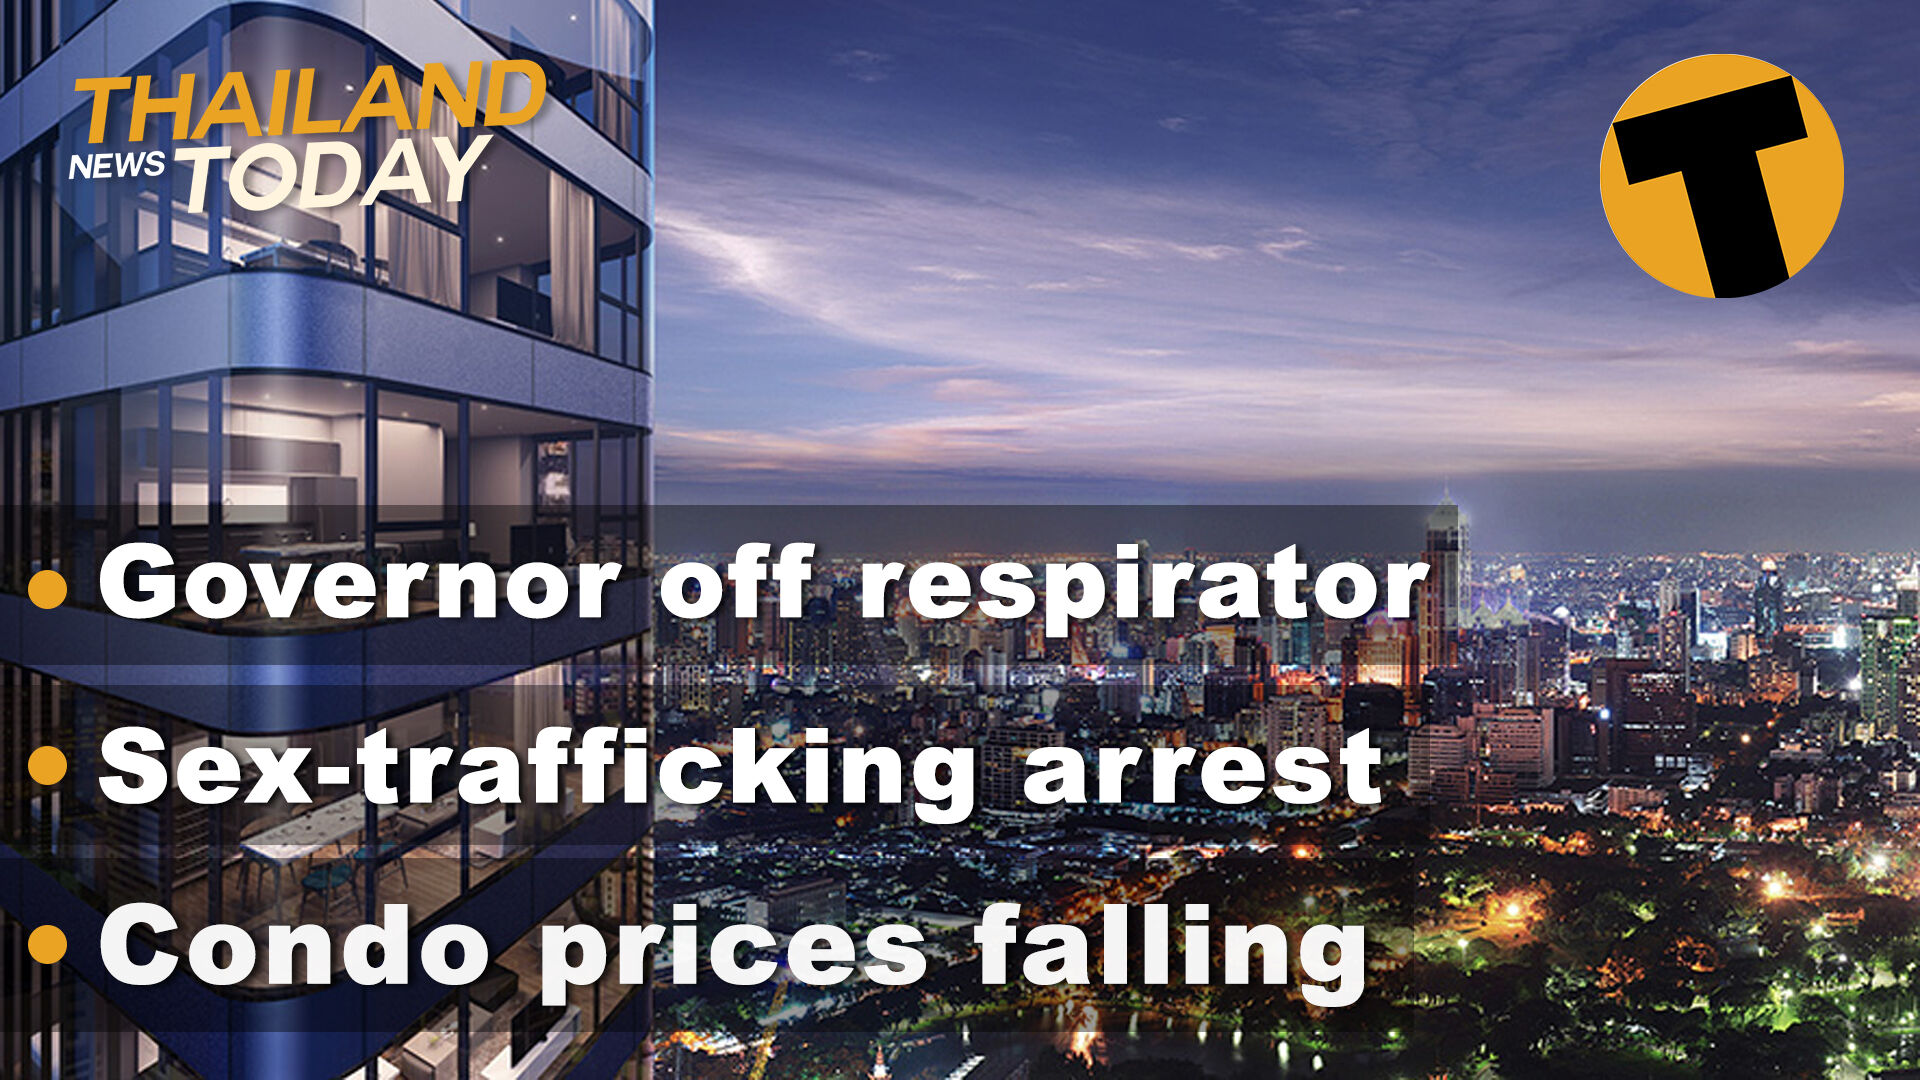 Thailand News Today | Governor off respirator, sex-trafficking arrest, condo prices falling | January 14